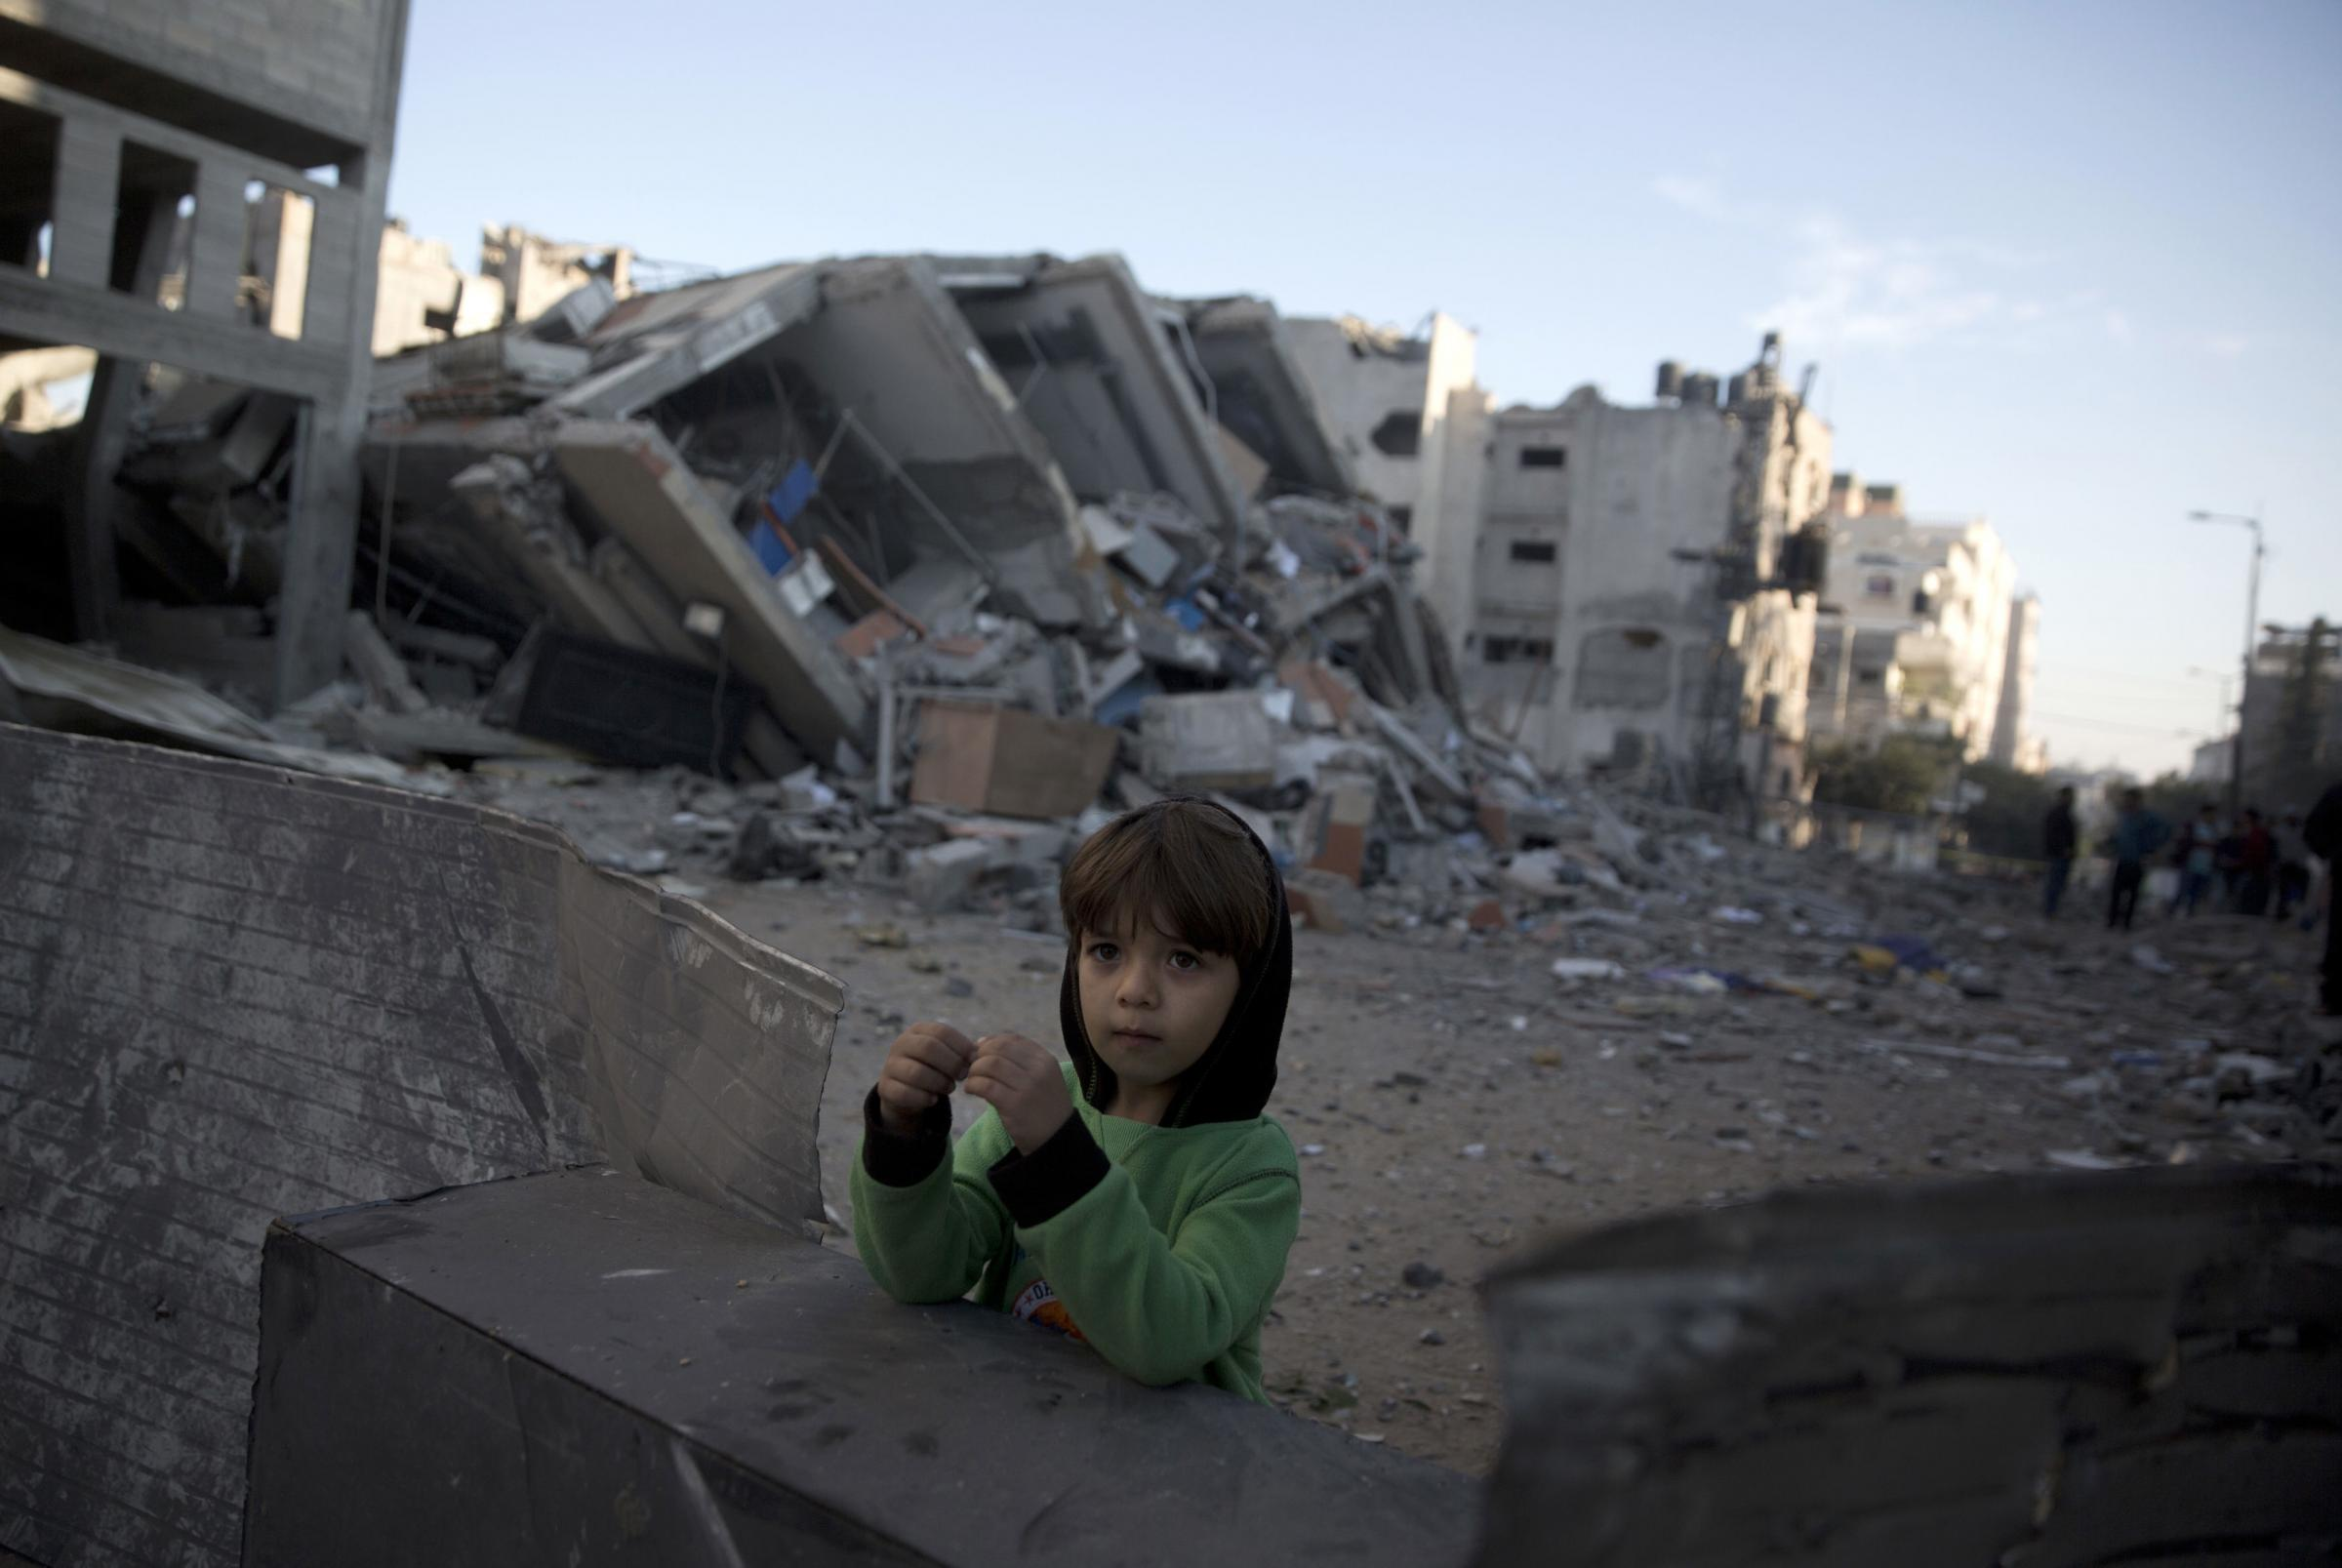 Twinning Edinburgh with Gaza City would show our support